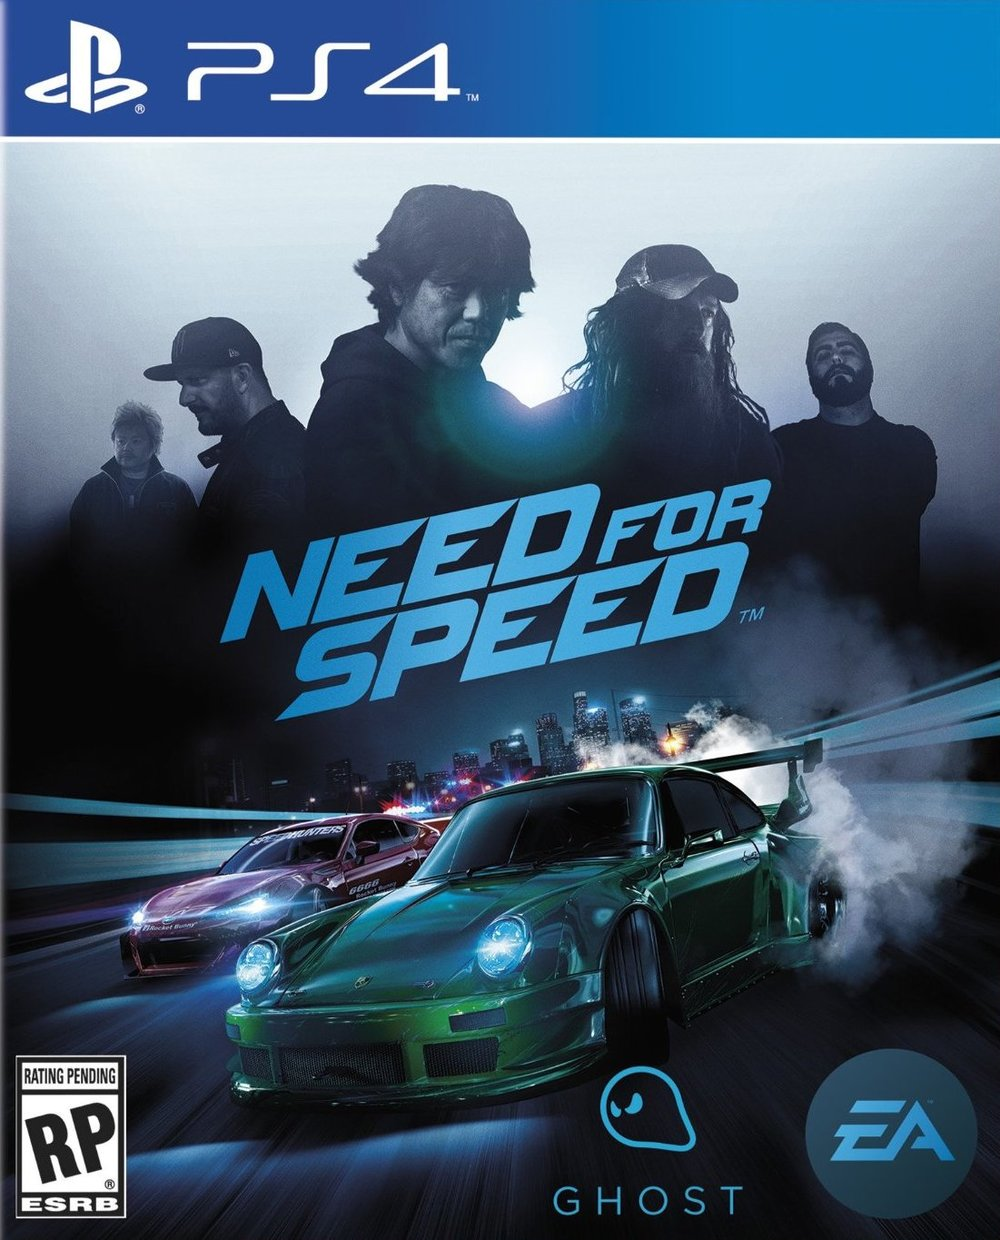 New Need for Speed 2015 game, developed by Ghost Games, and published by EA.